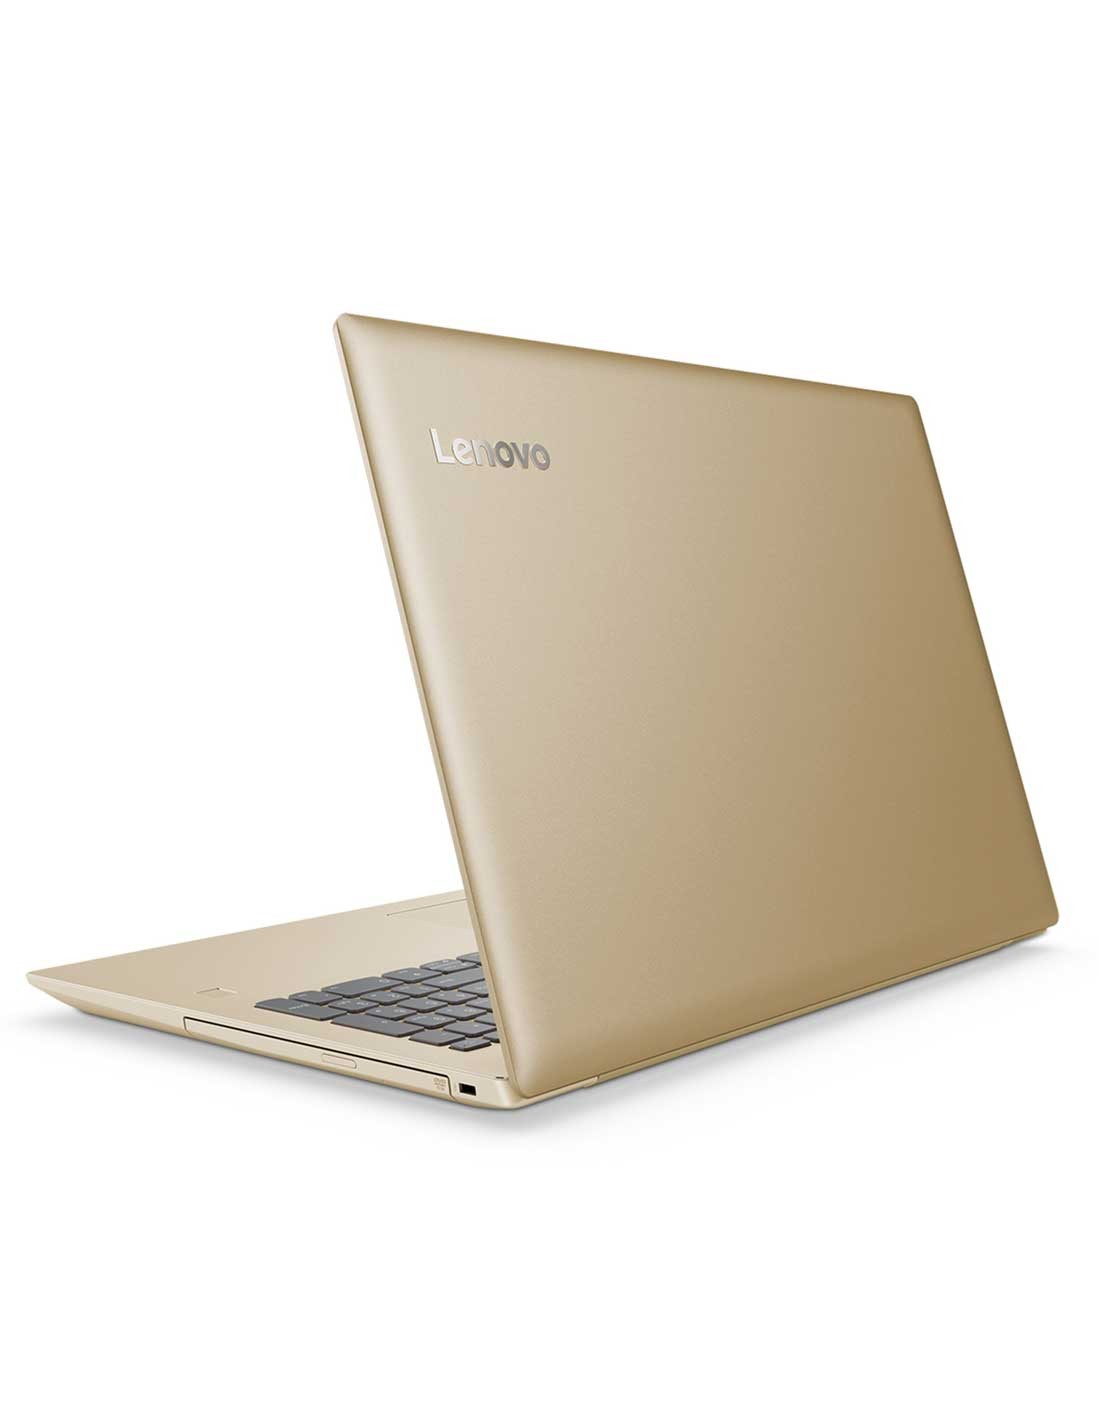 Lenovo IdeaPad 520 Gold 8th Gen Intel Core i7 Buy Online at a cheap price in UAE